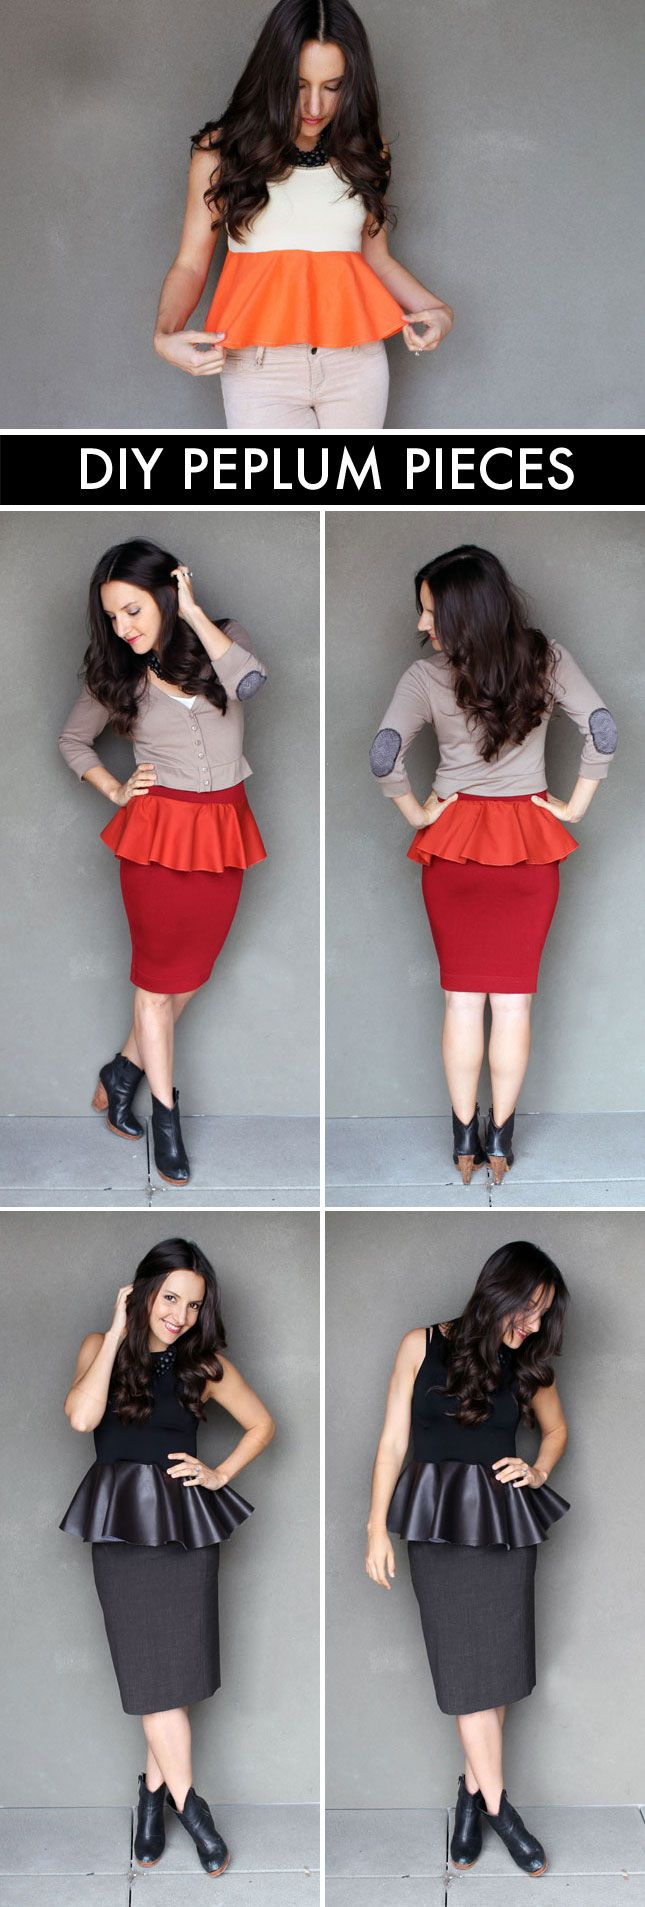 Turn Your Clothes into Chic Peplum Pieces